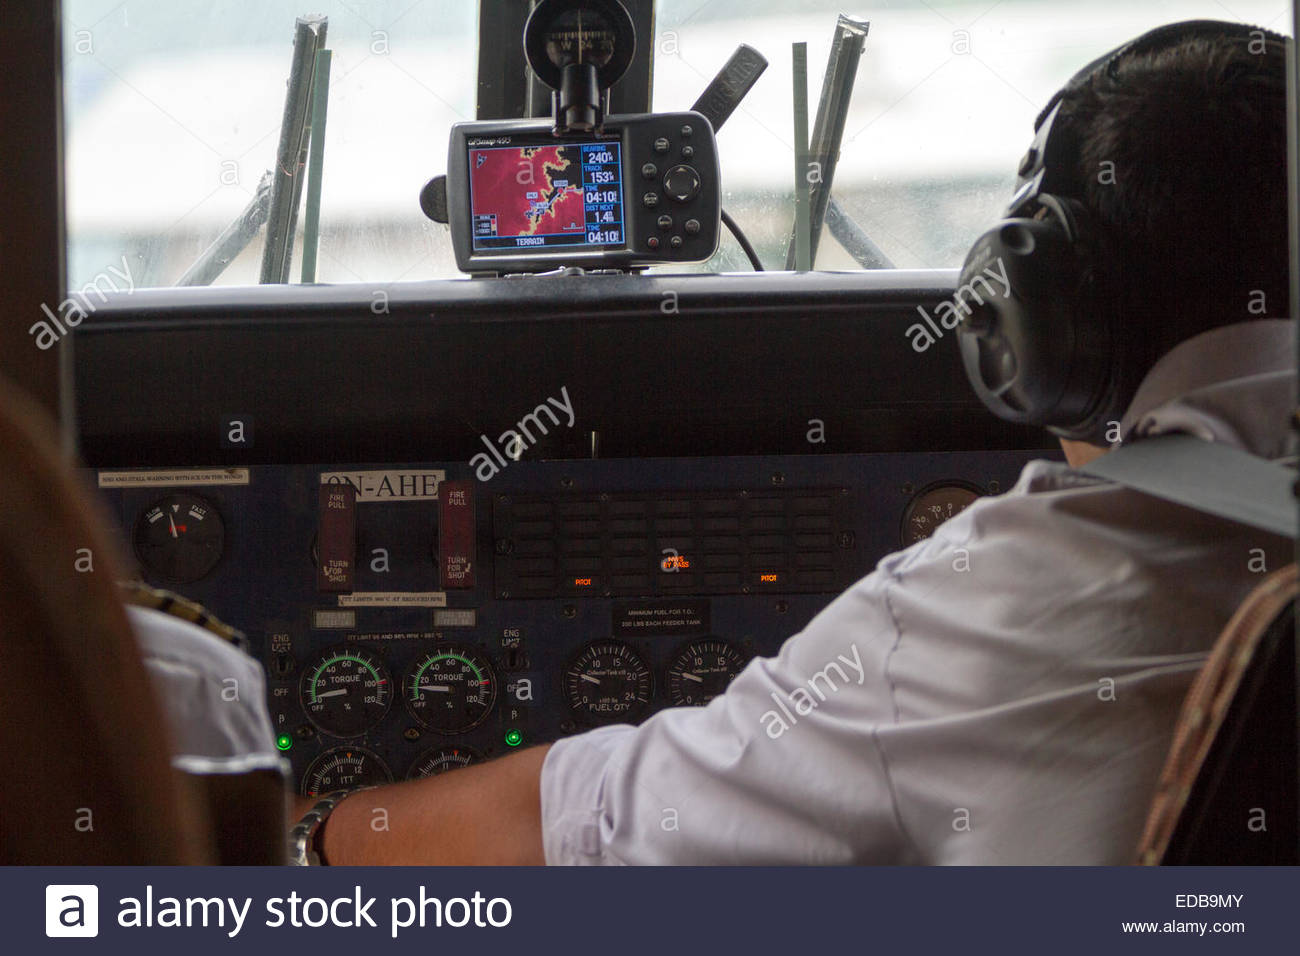 Pilot sitting in airplane cockpit - nepal - Stock Image